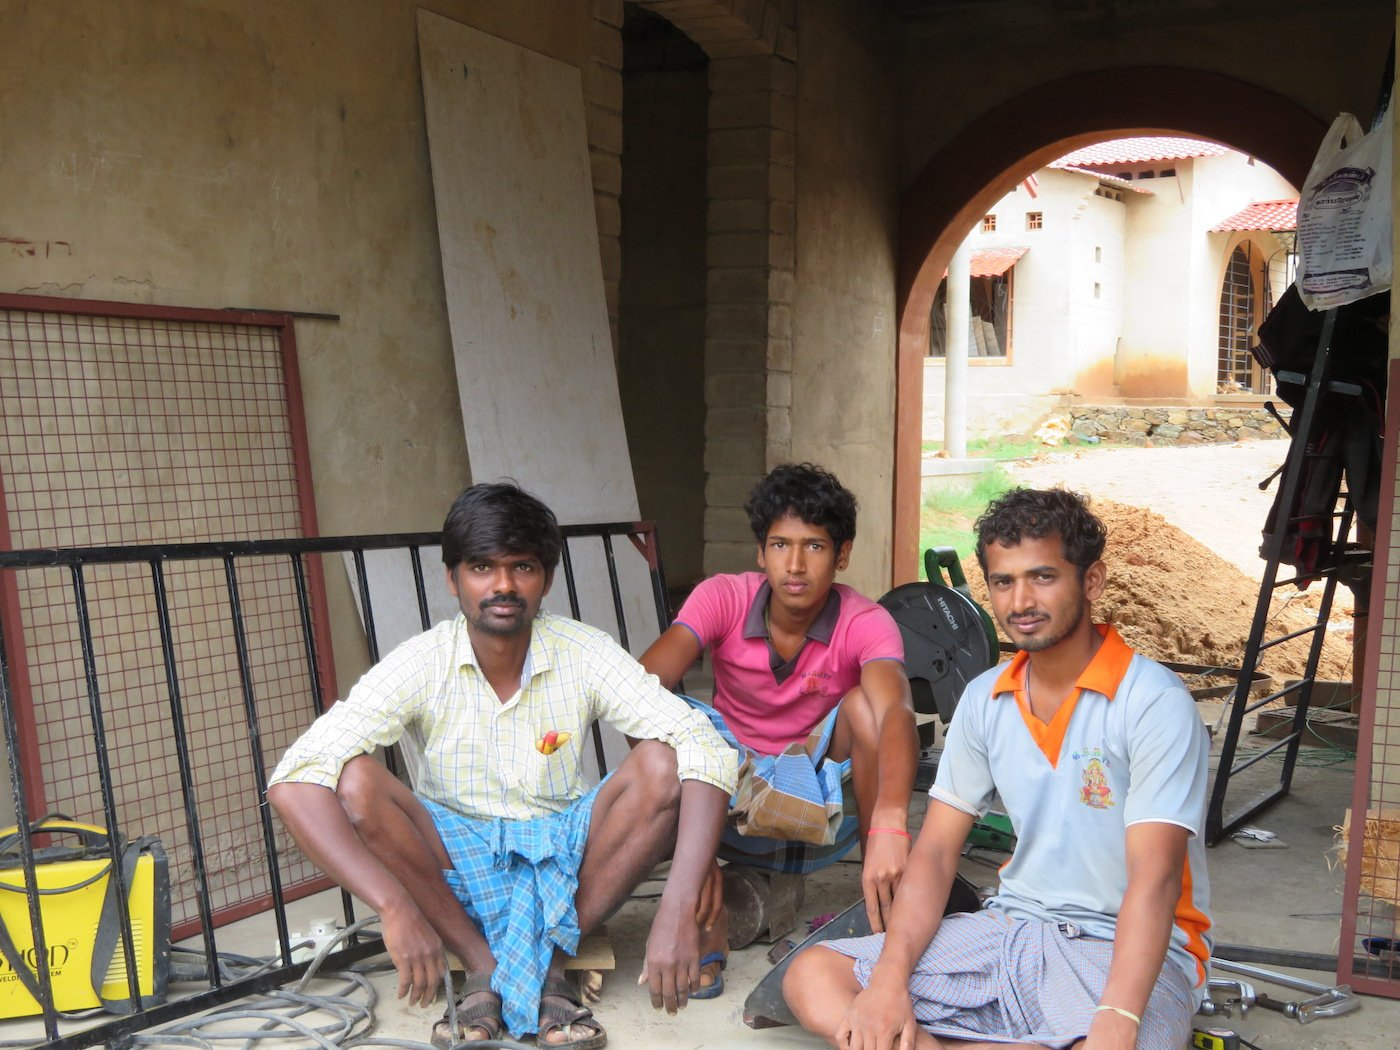 Perumal, Sriram and Kumar (left to right) building a new school campus